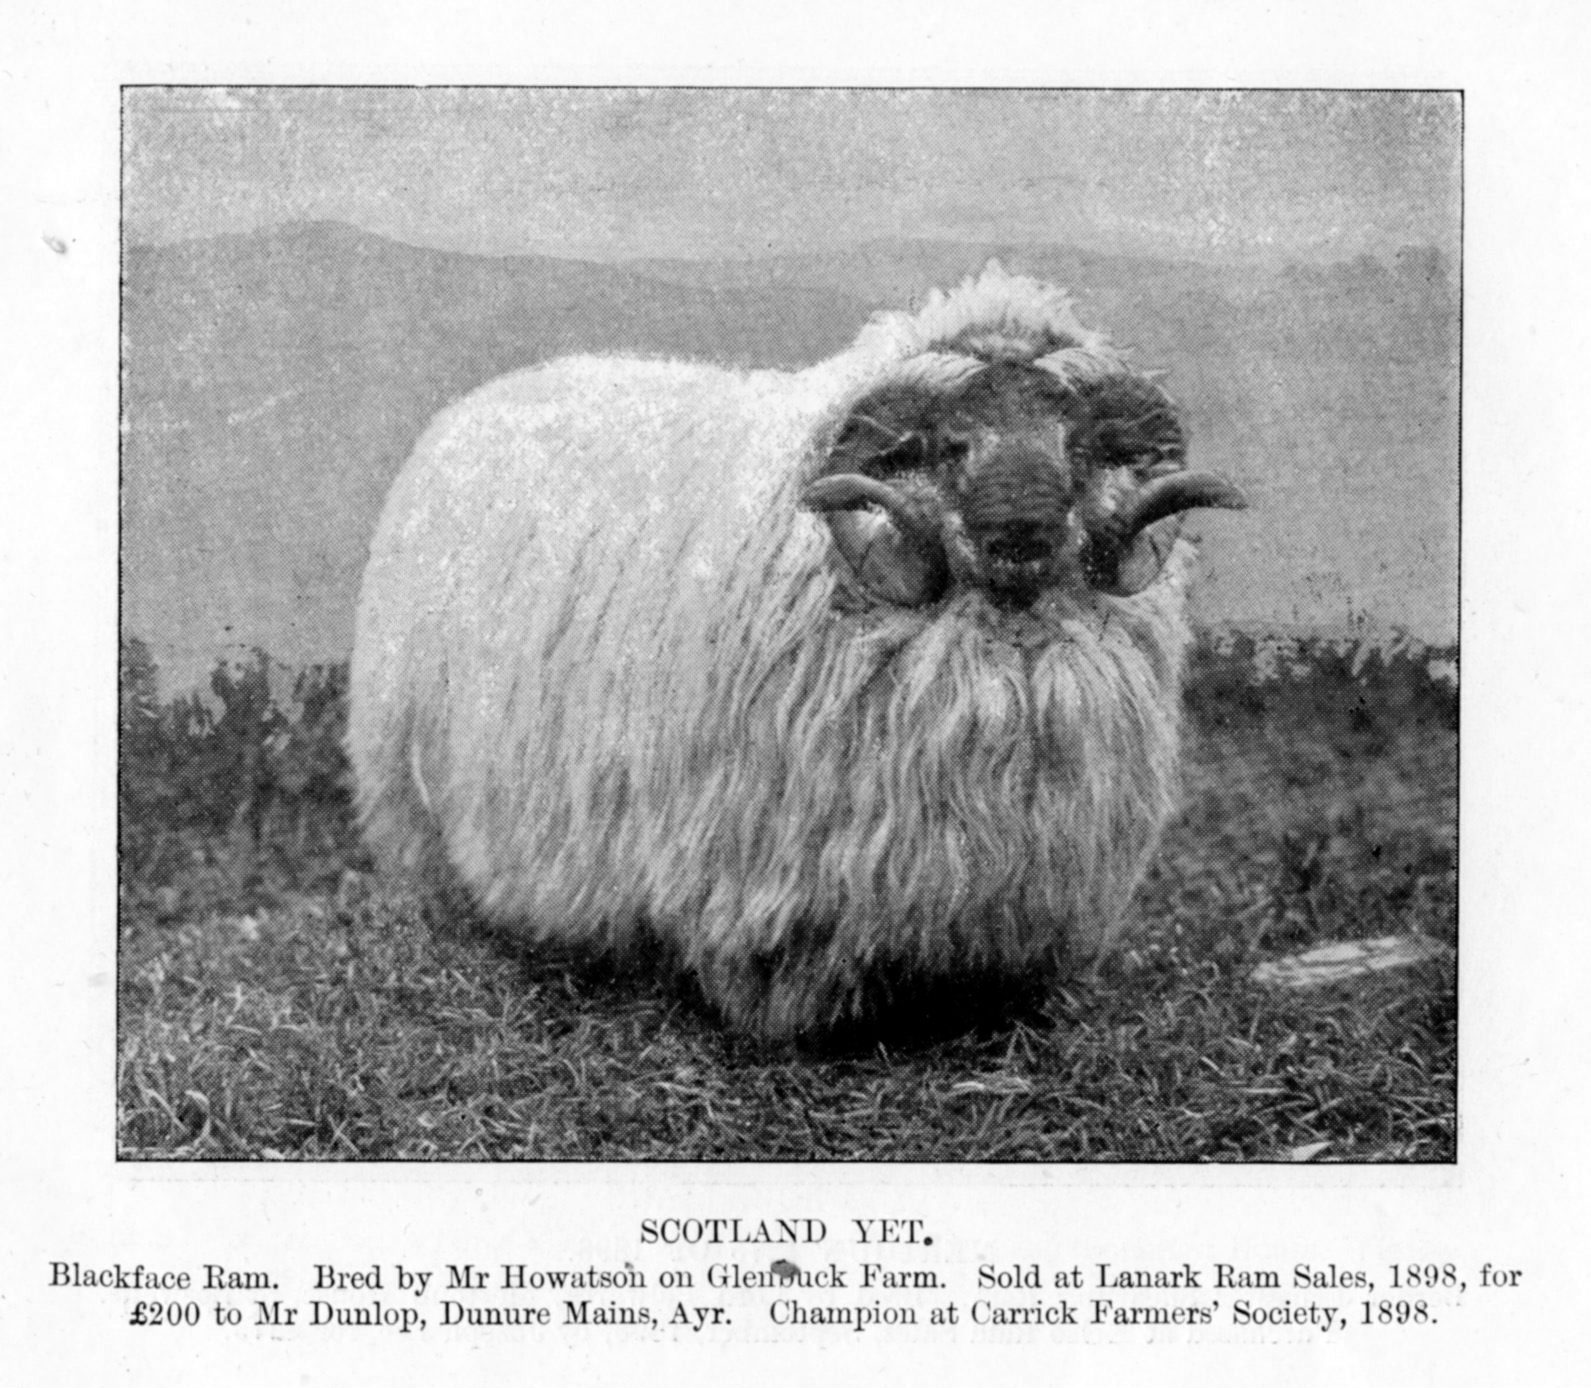 Scotland Yet -- a Blackface ram bred by Mr Howatson on Glenbuck Farm sold at Lanark in 1898 for £200 to Mr Dunlop, Dunure Mains, Ayr. It had been champion at Carrick Farmers Society Show the same year